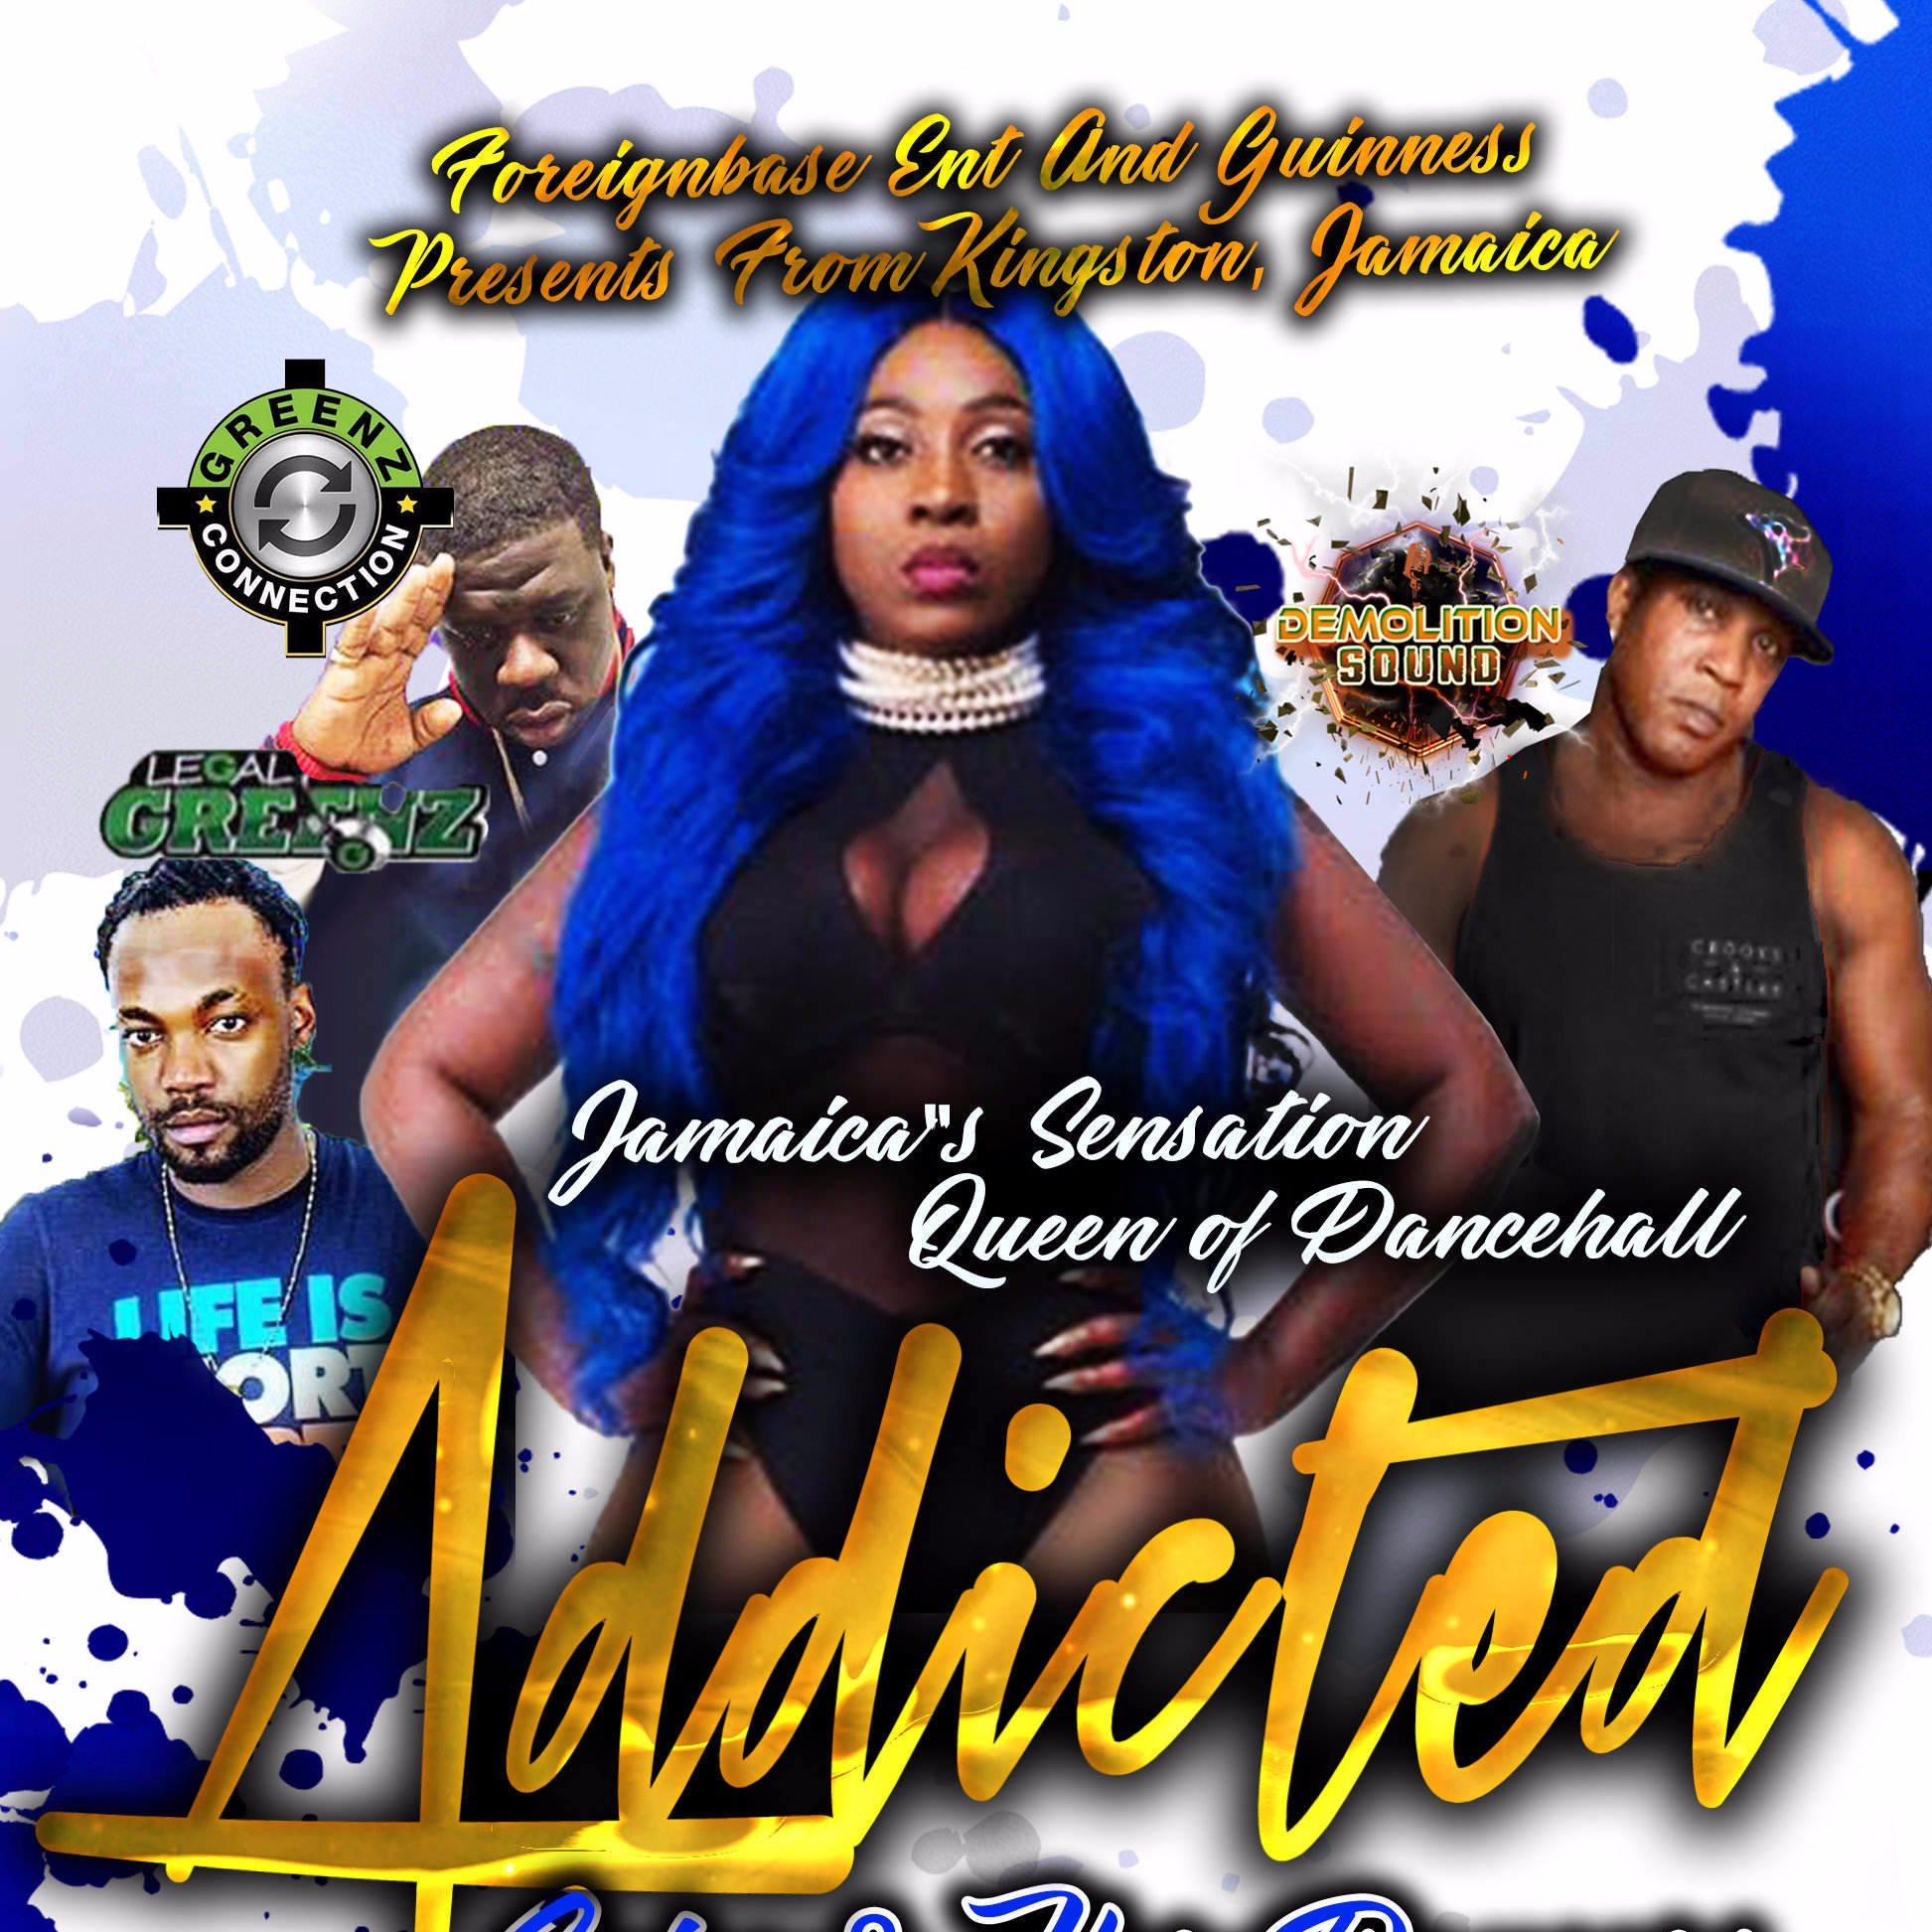 ADDICTED - SPICE & HER DANCERS